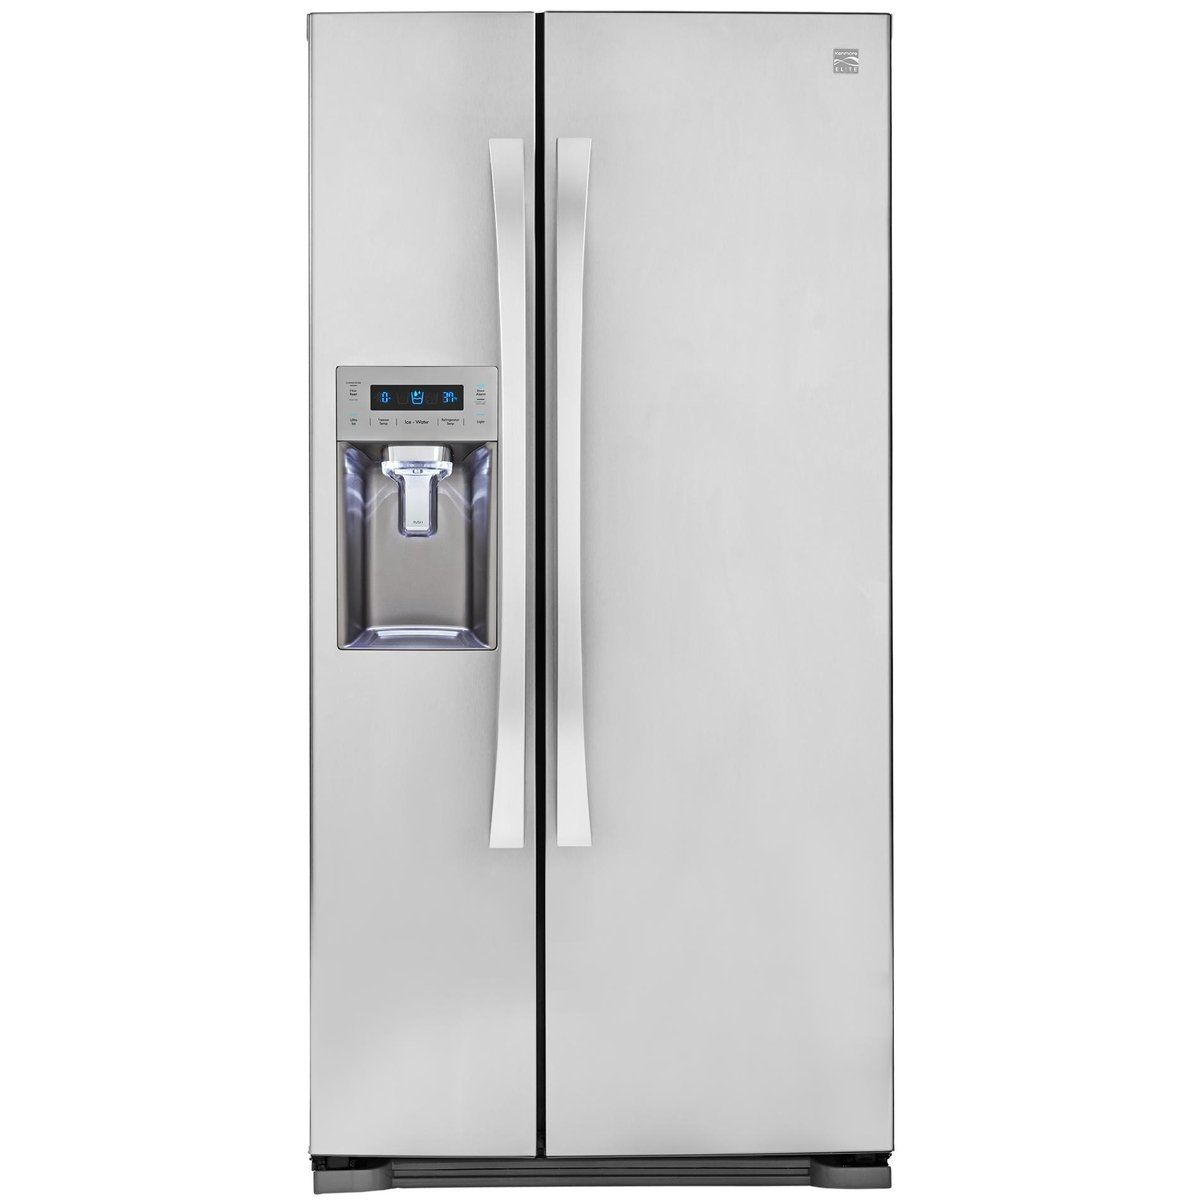 #3 rated in reliable: Kenmore Elite 51823 21.9 cu. ft. Side-by-Side Refrigerator, scored 95/100